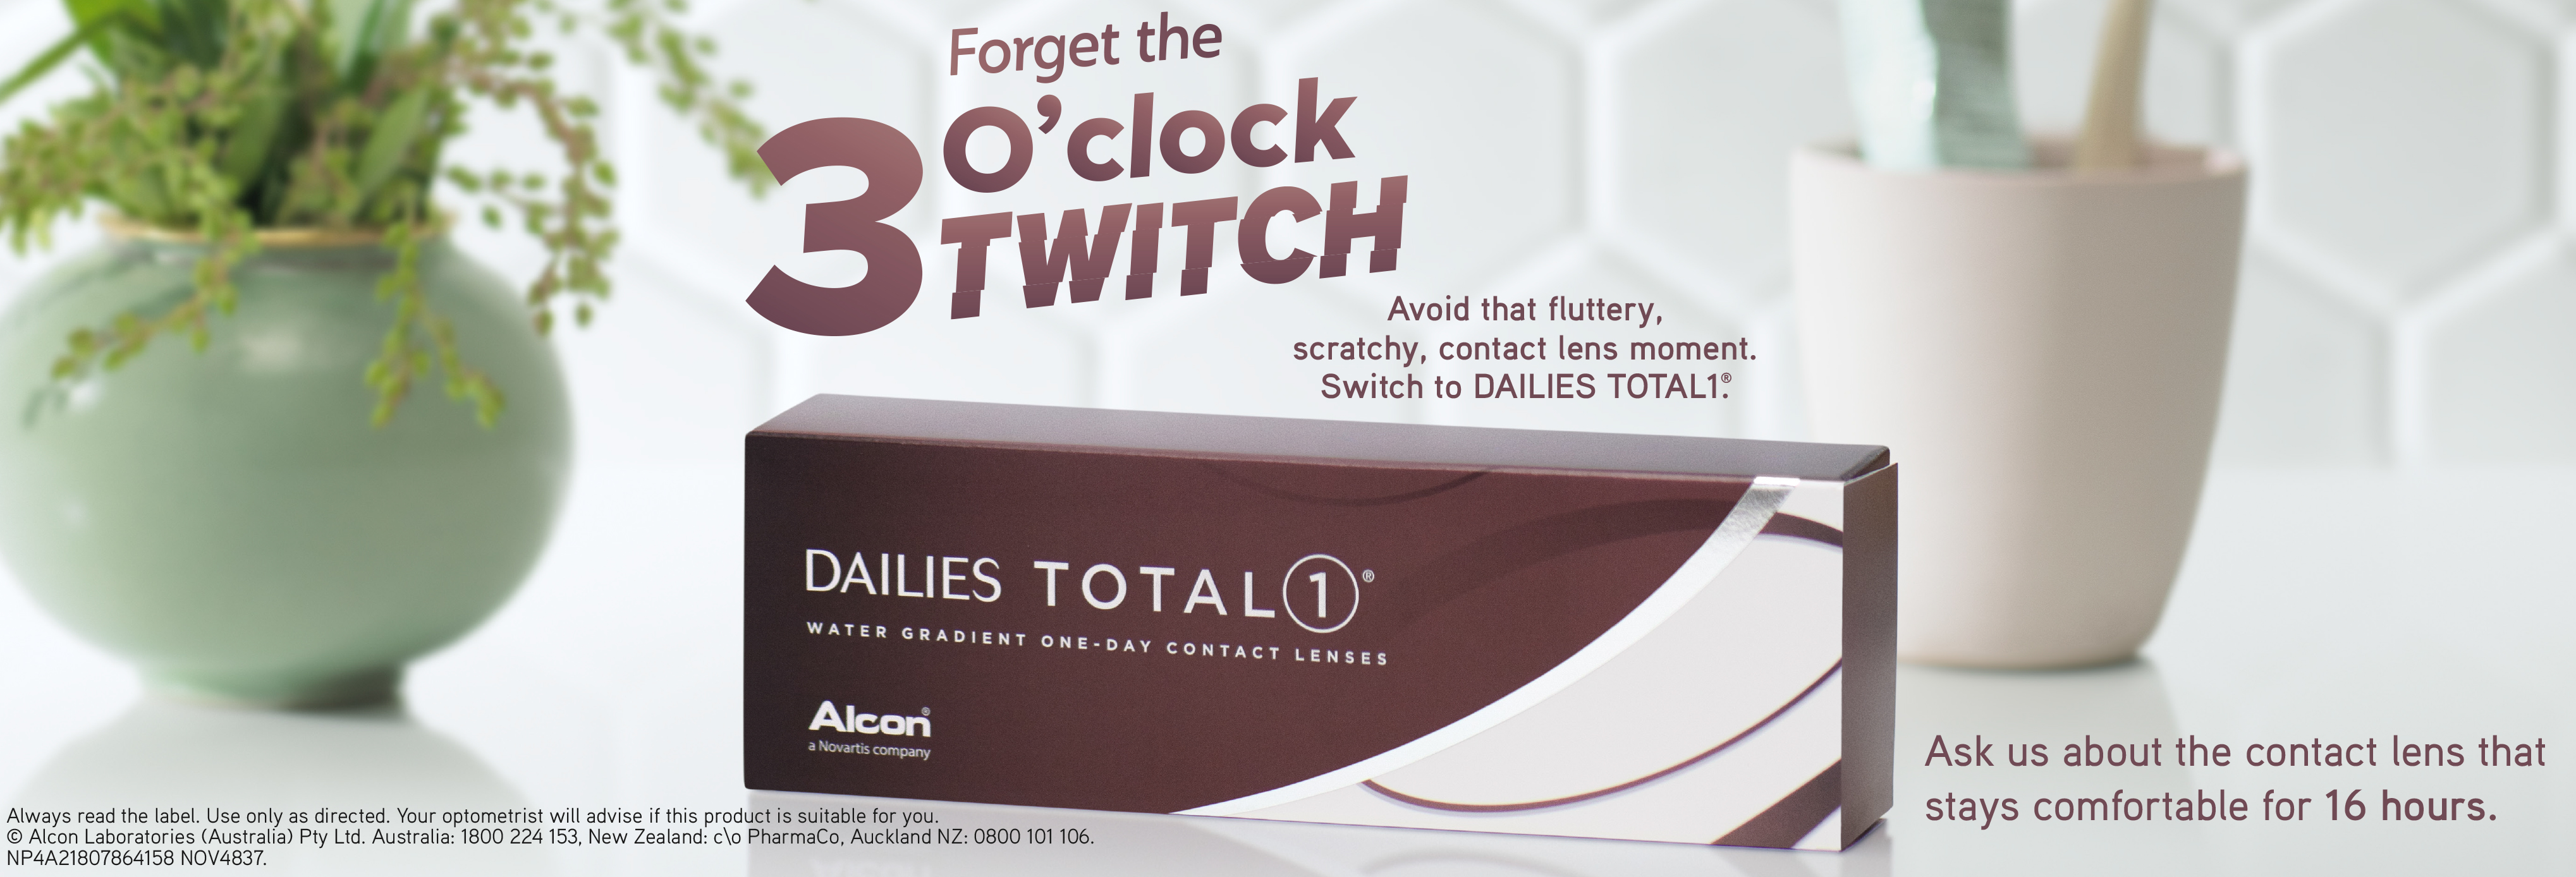 #Forget the 3 O'clock Twitch